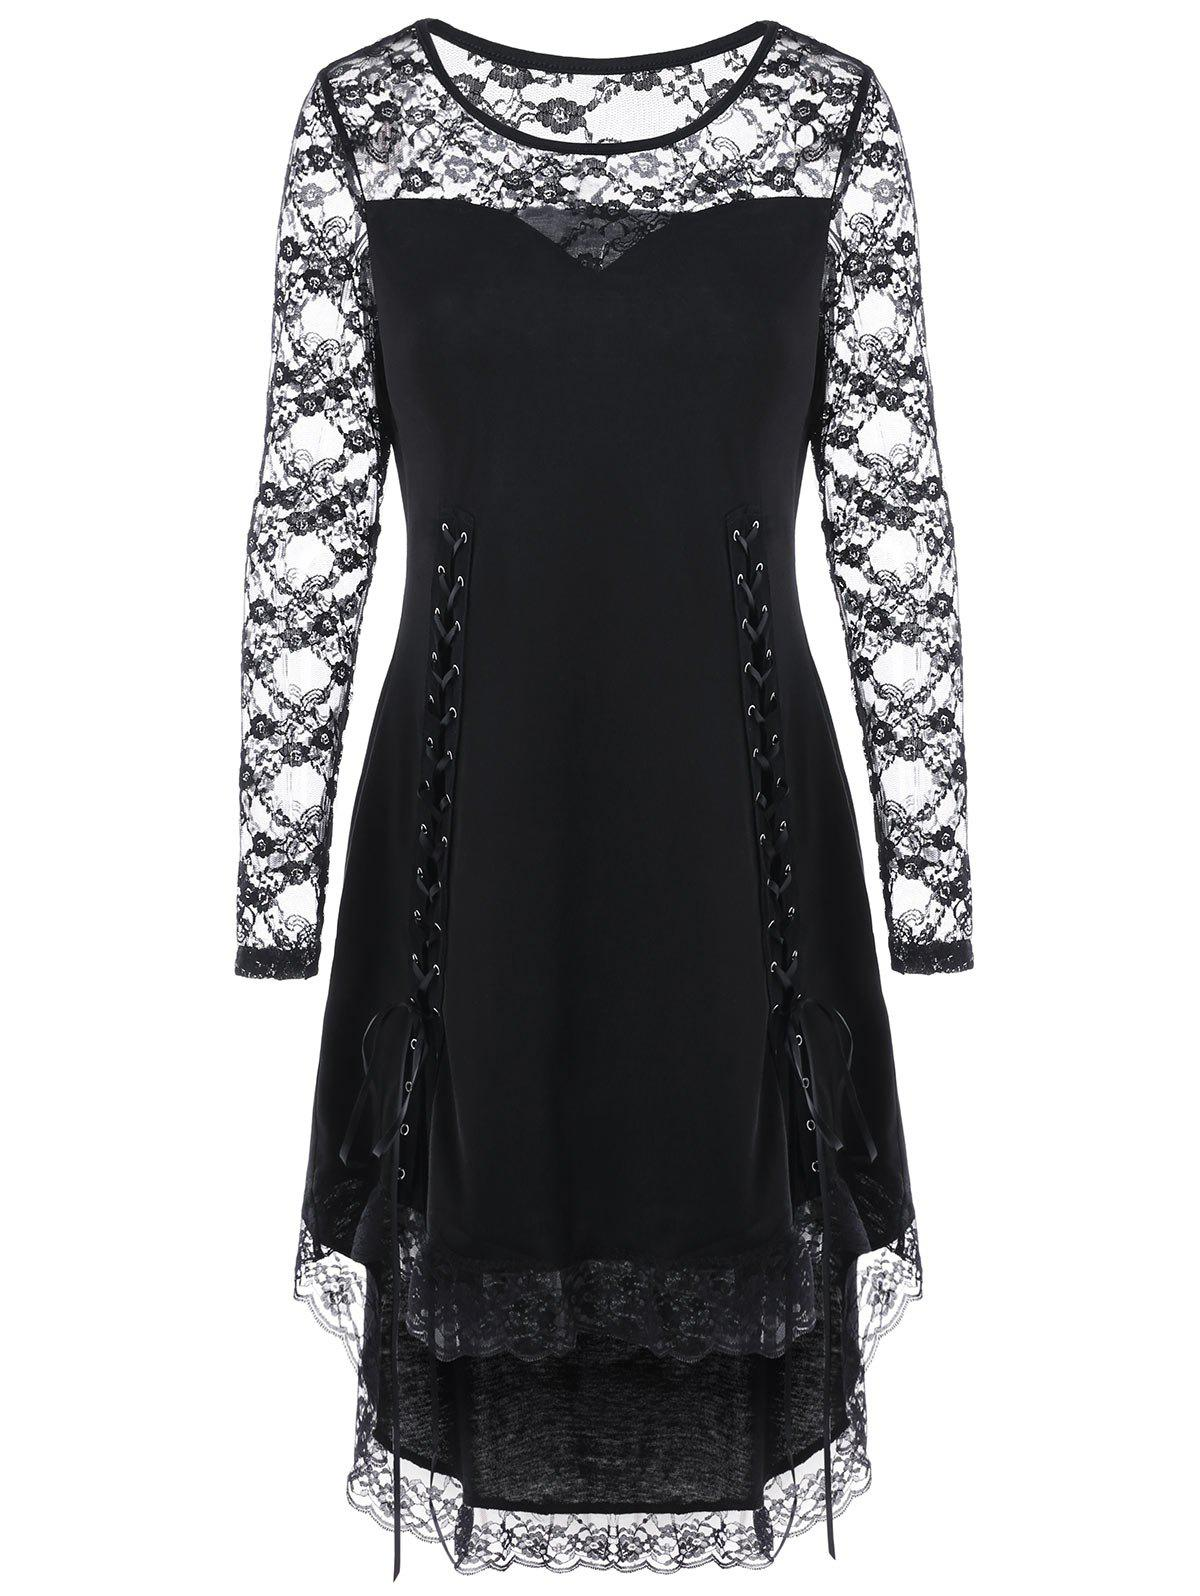 Halloween Lace Up Lace Yoke Cocktail DressWOMEN<br><br>Size: XL; Color: BLACK; Style: Gothic; Material: Polyester,Spandex; Silhouette: High-Low; Dress Type: Tee Dress; Dresses Length: Knee-Length; Neckline: Round Collar; Sleeve Length: Long Sleeves; Embellishment: Lace; Pattern Type: Floral; With Belt: No; Season: Fall,Spring; Weight: 0.2700kg; Package Contents: 1 x Dress; Occasion: Casual,Club,Evening,Night Out,Pageant Dresses;